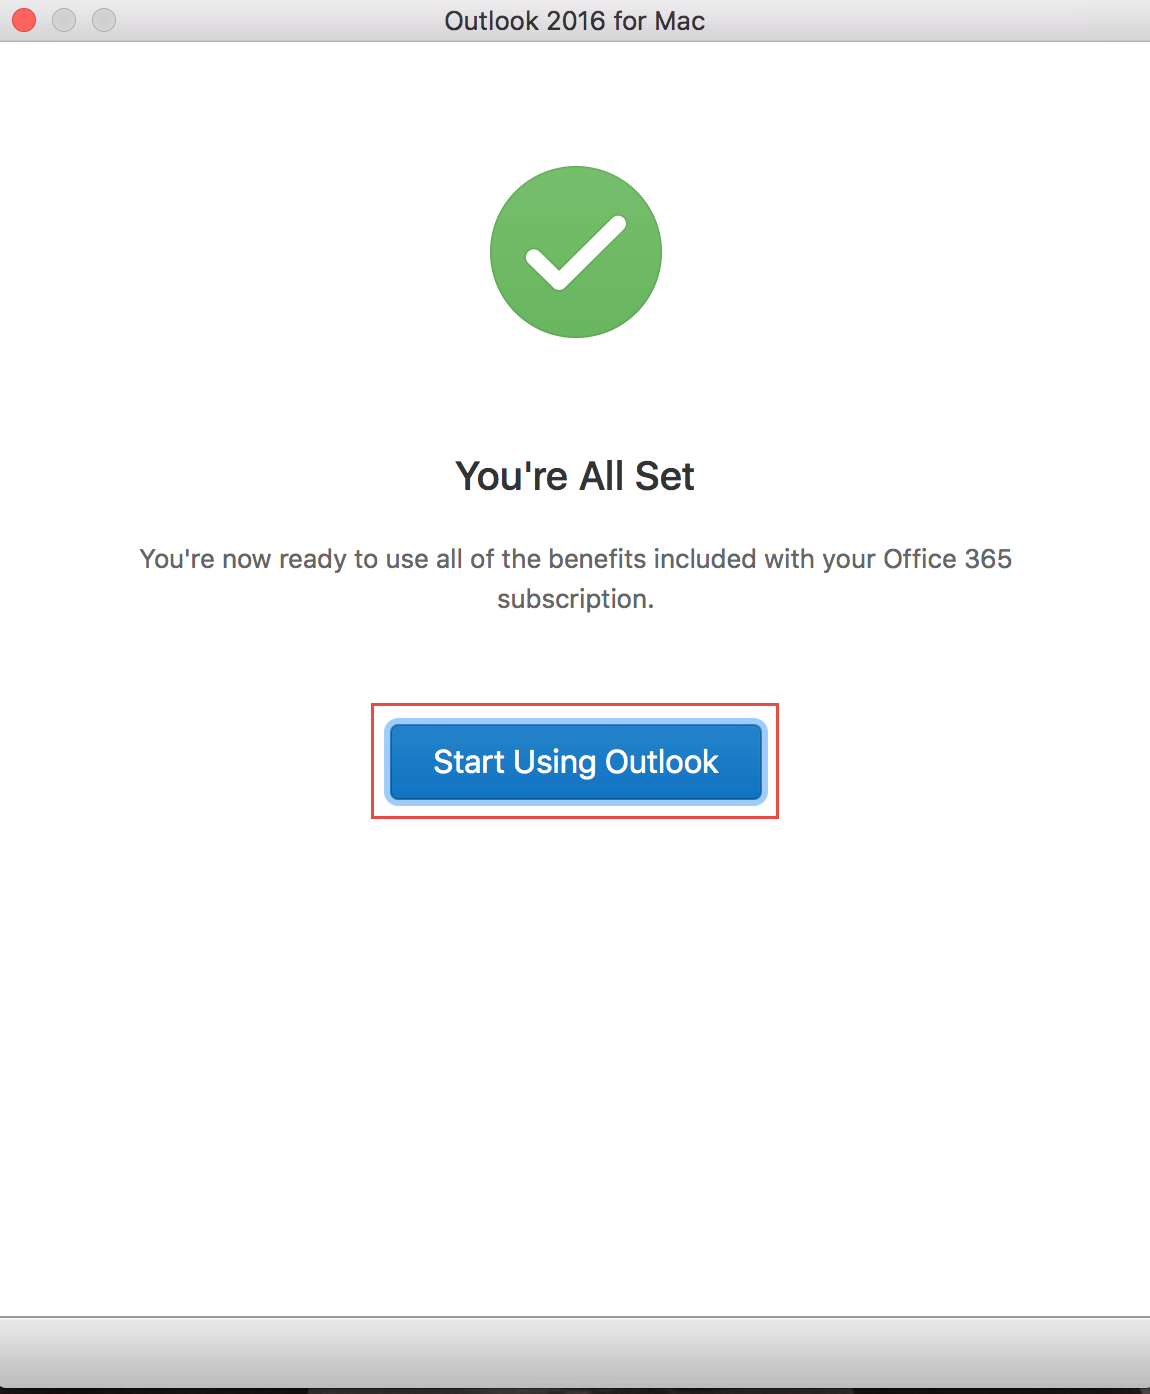 After signing in, you get the all set screen